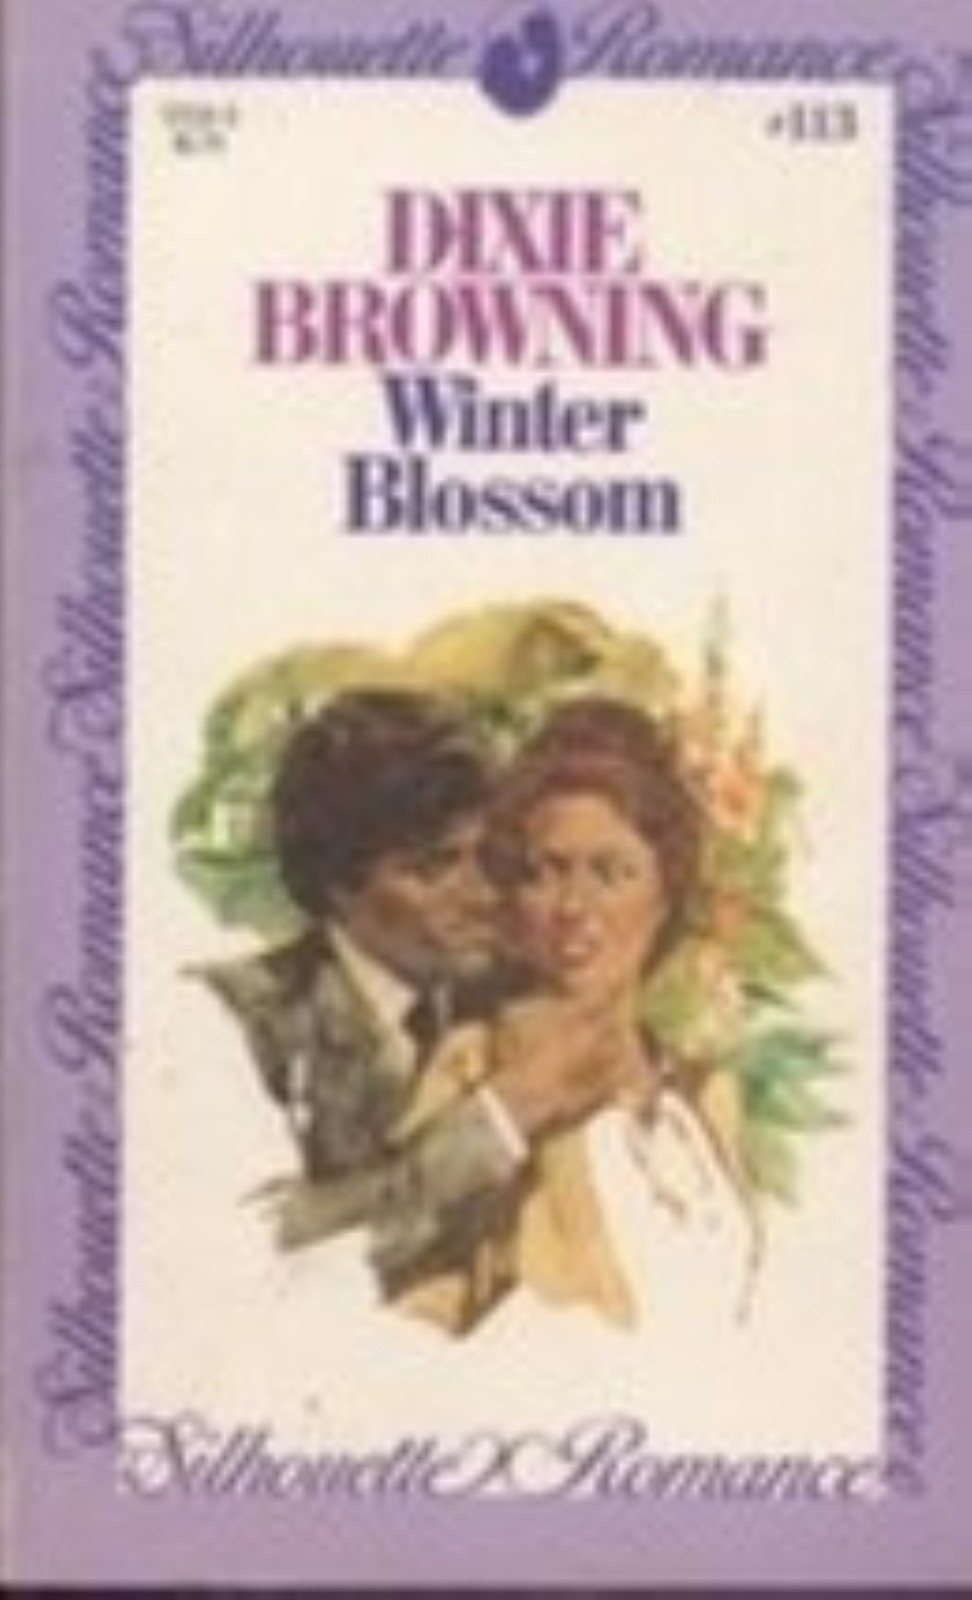 Winter Blossom by Dixie Browning